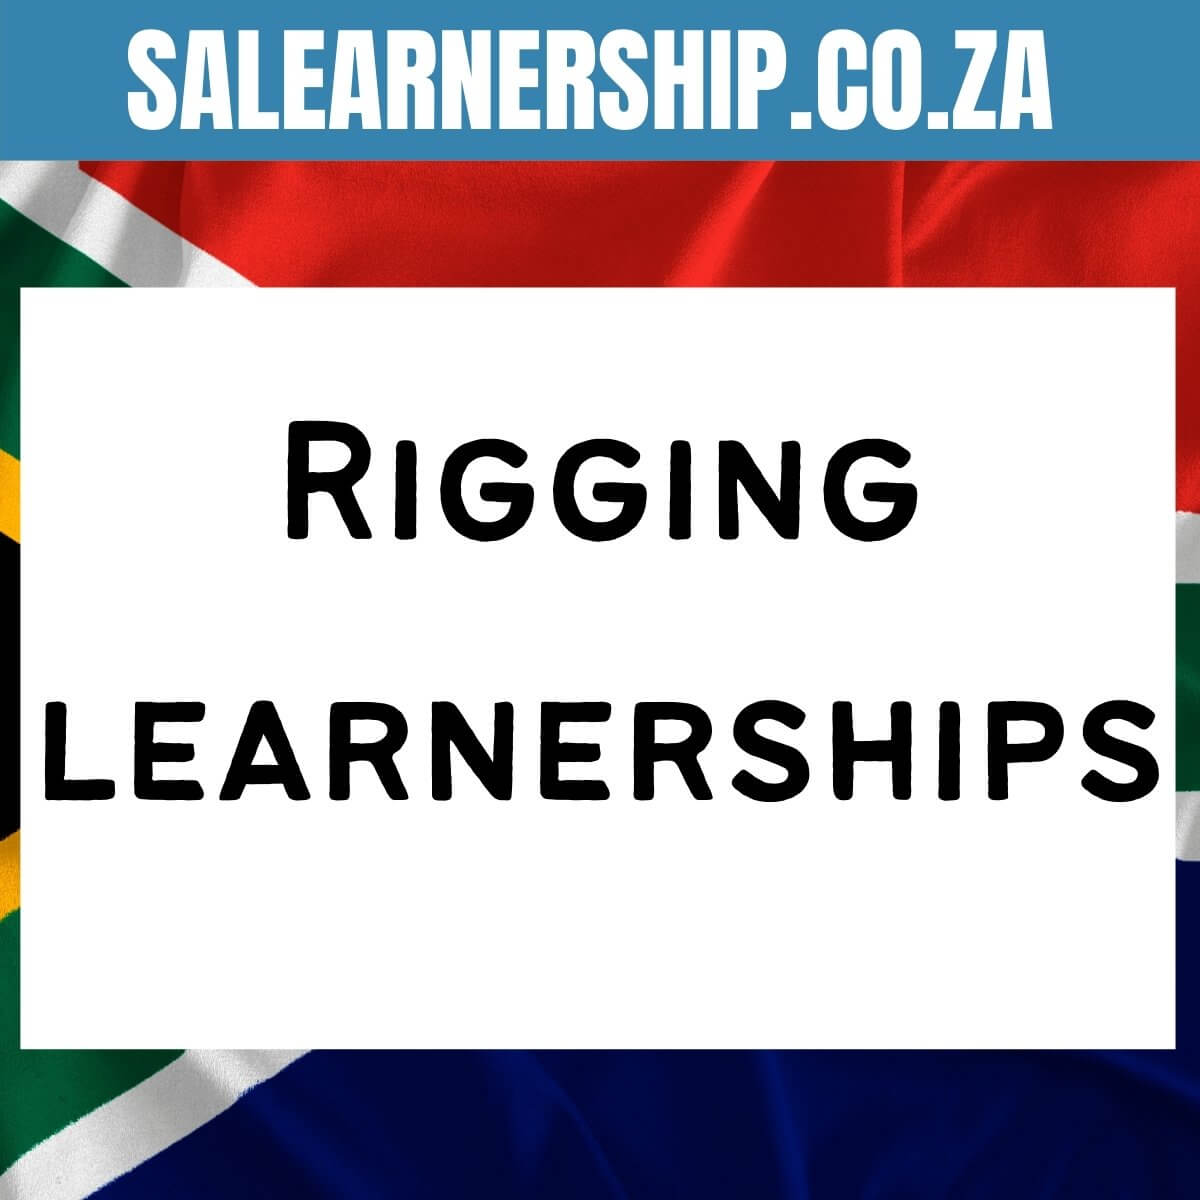 Rigging learnerships